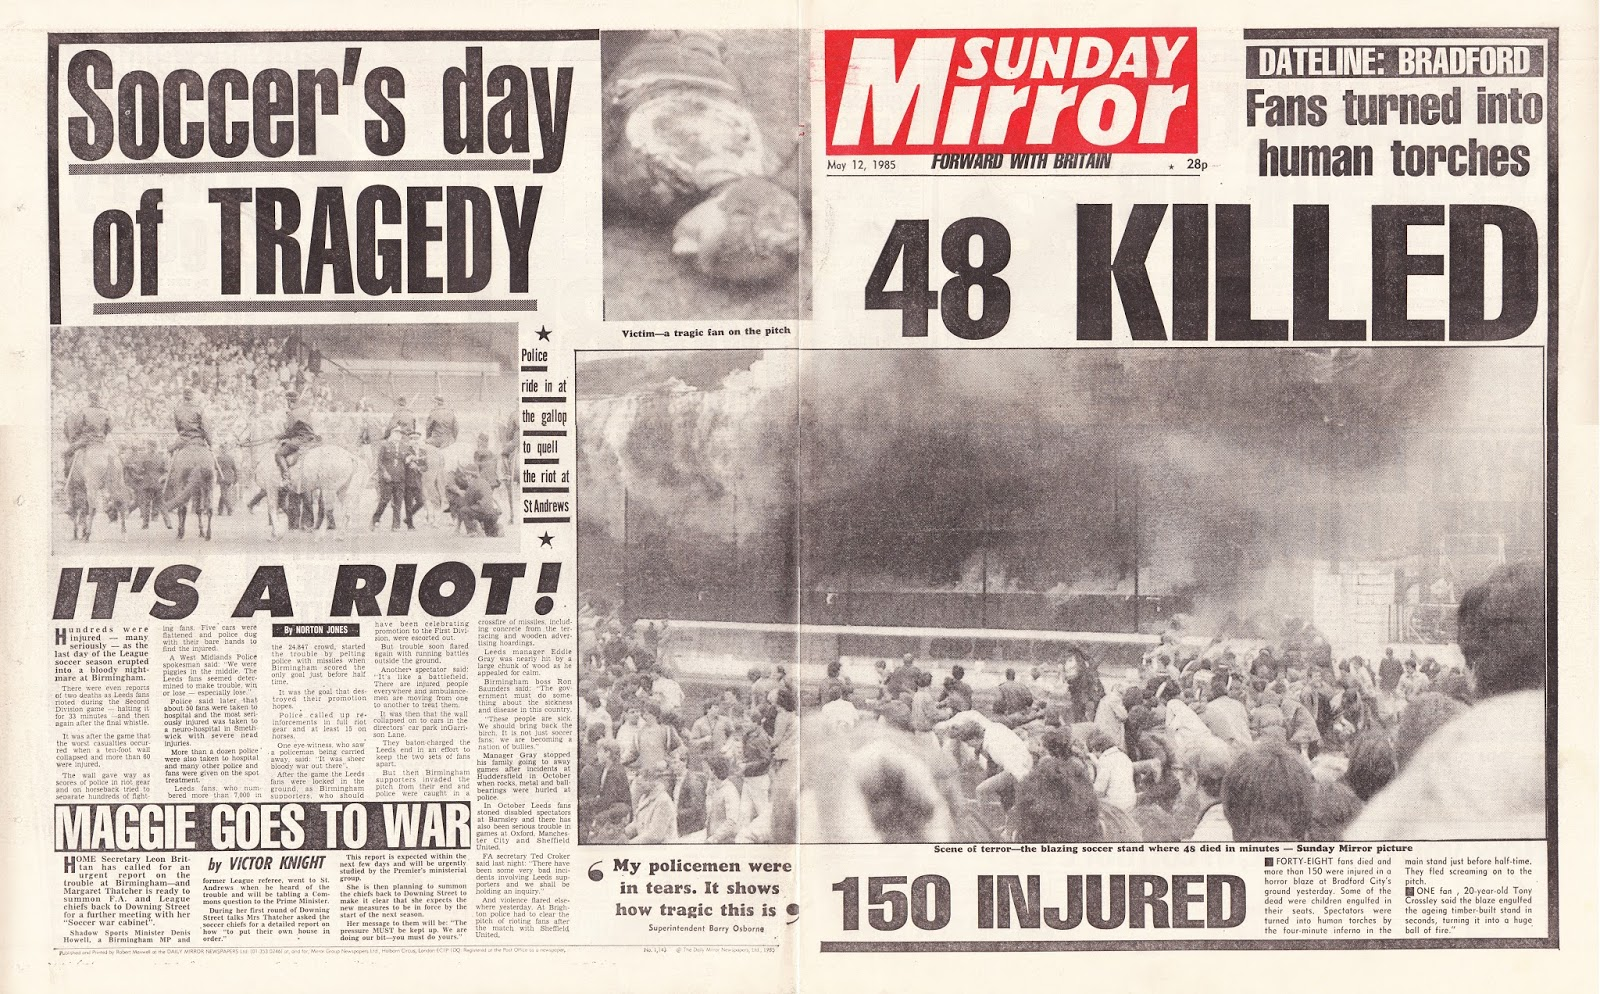 Hold The Front Page: The Bradford City Stadium fire